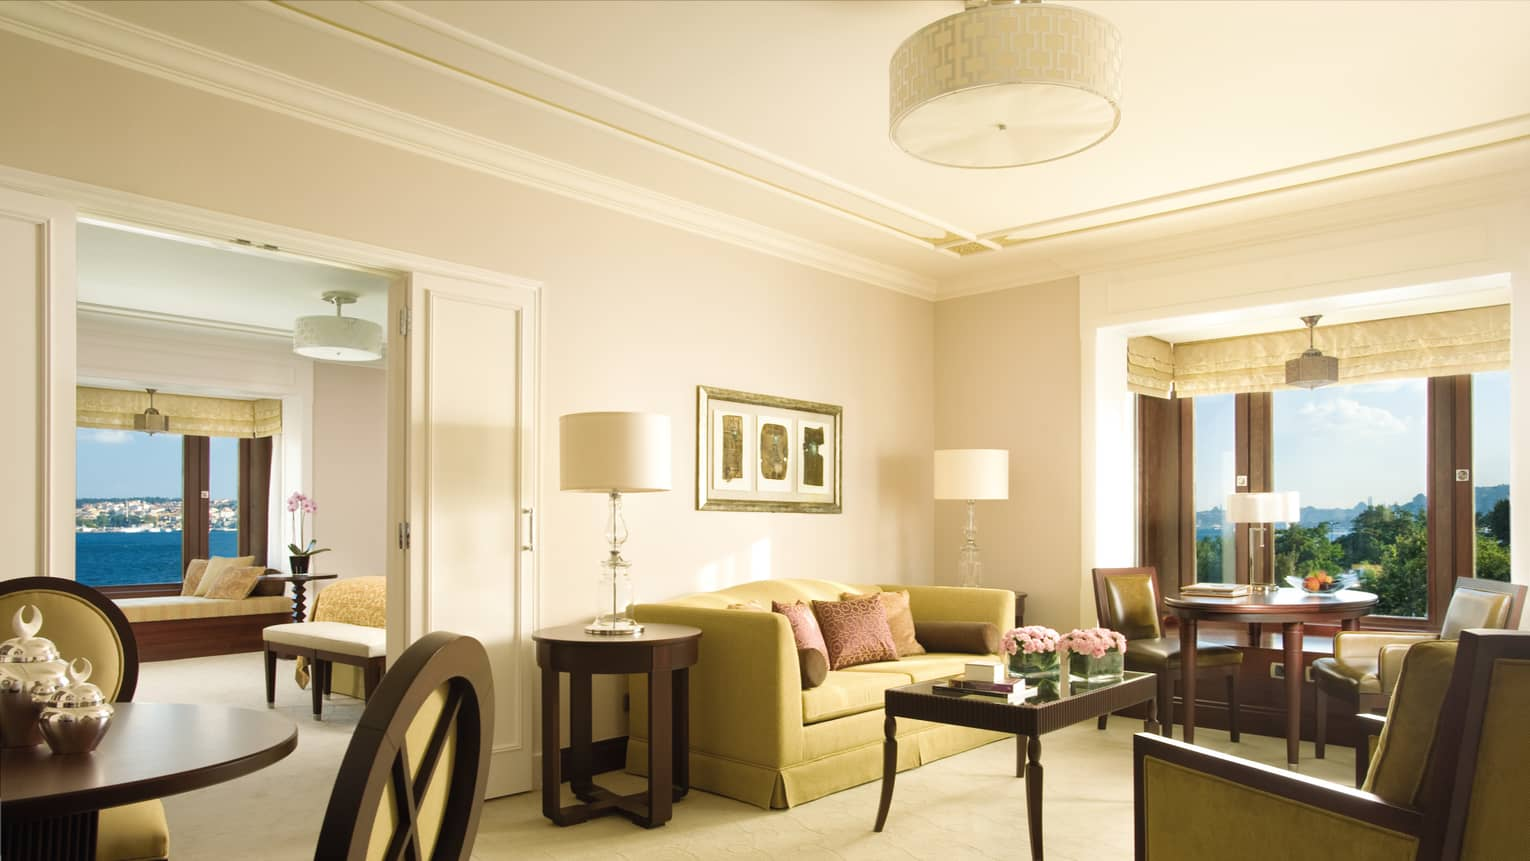 Bosphorus Suite seating area, small round dining table in front of bay windows, bedroom doors